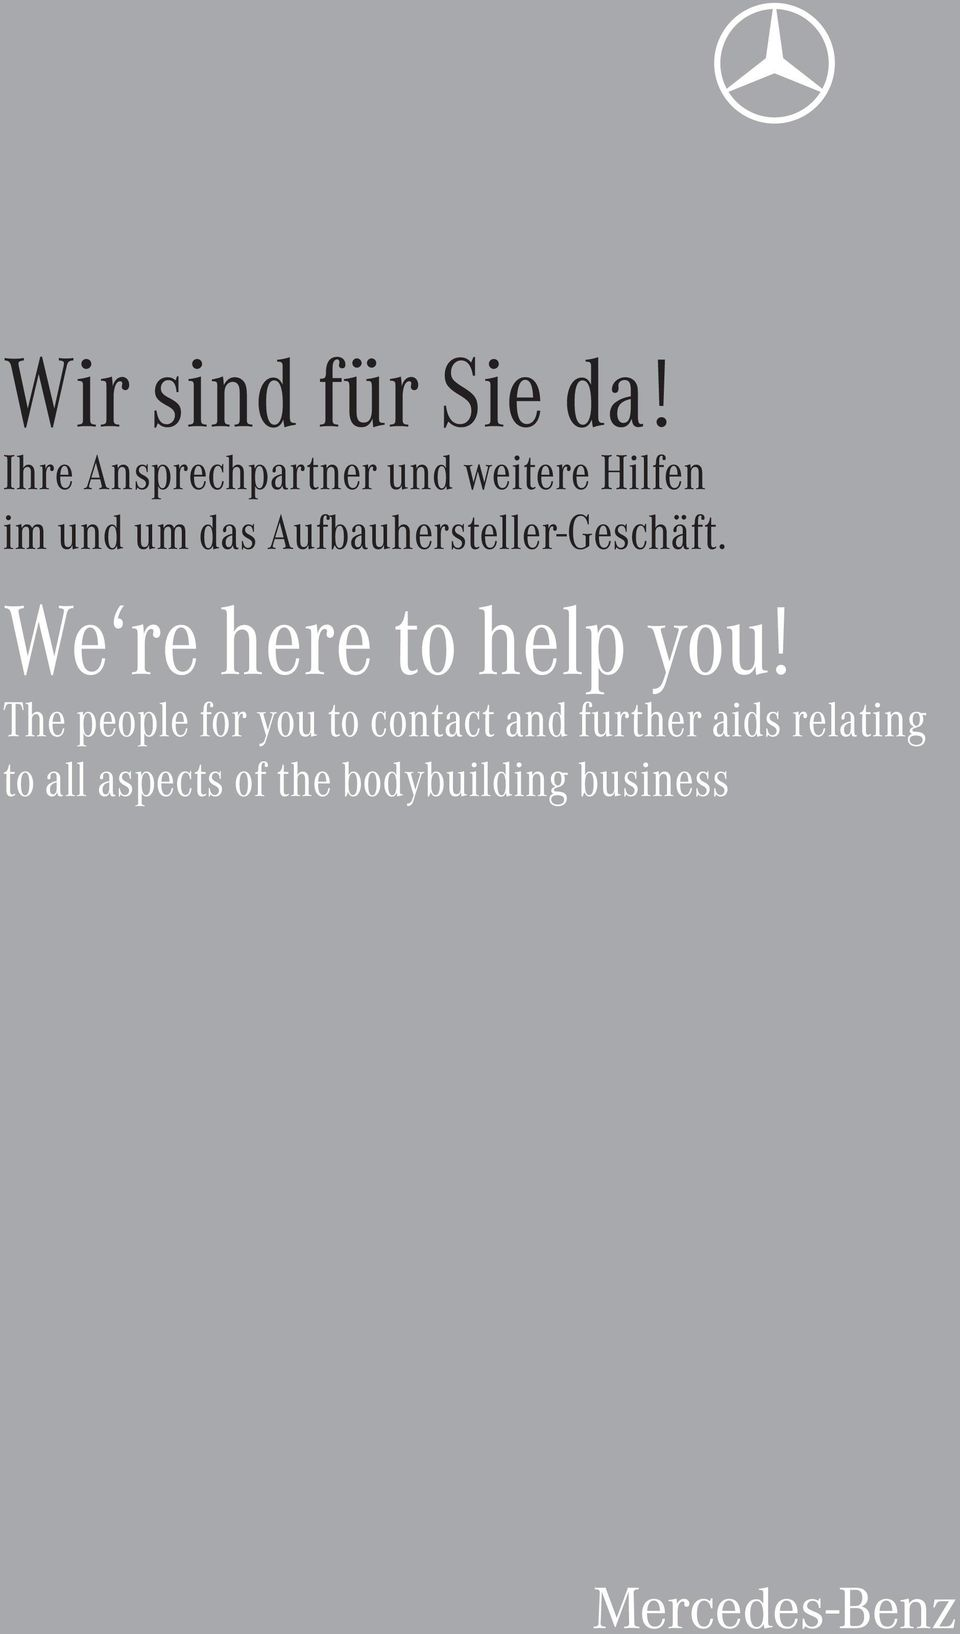 Aufbauhersteller-Geschäft. We re here to help you!